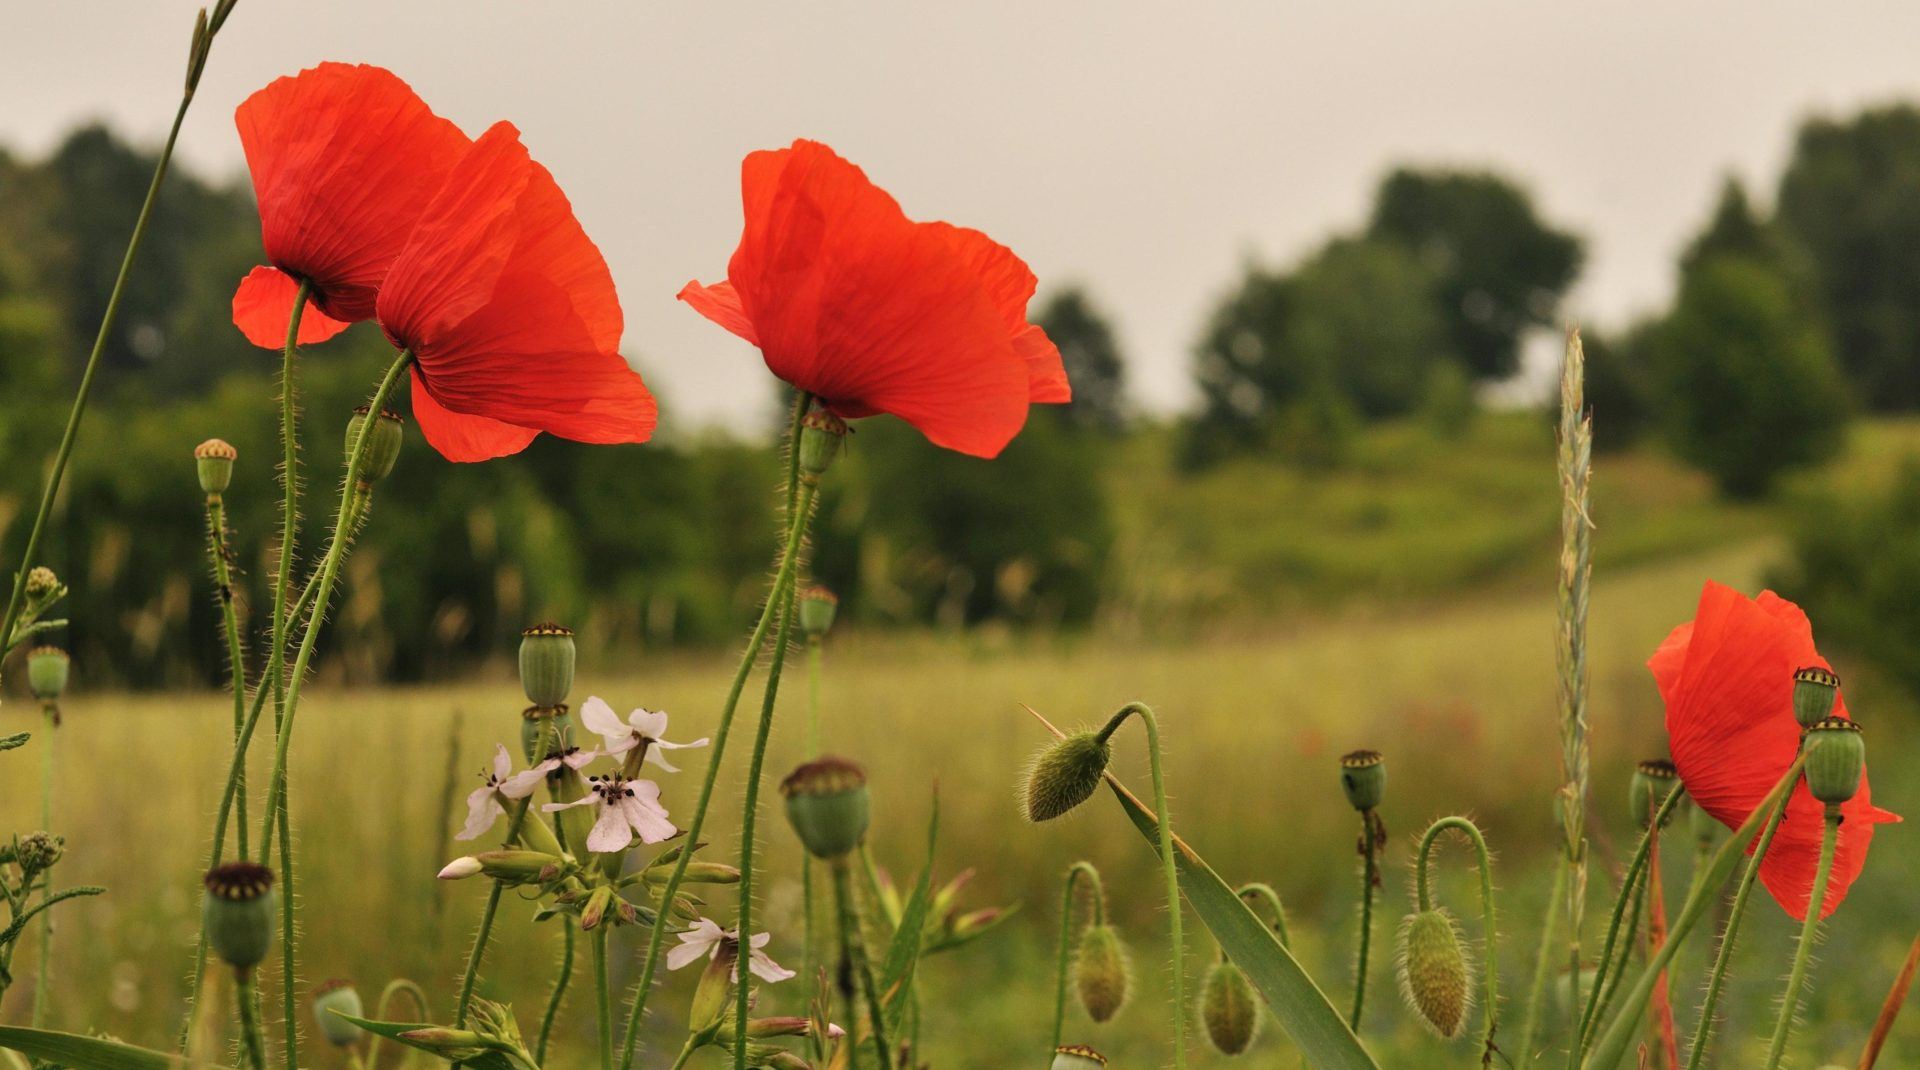 We will never forget: Statement by the Green party leader on Remembrance Day